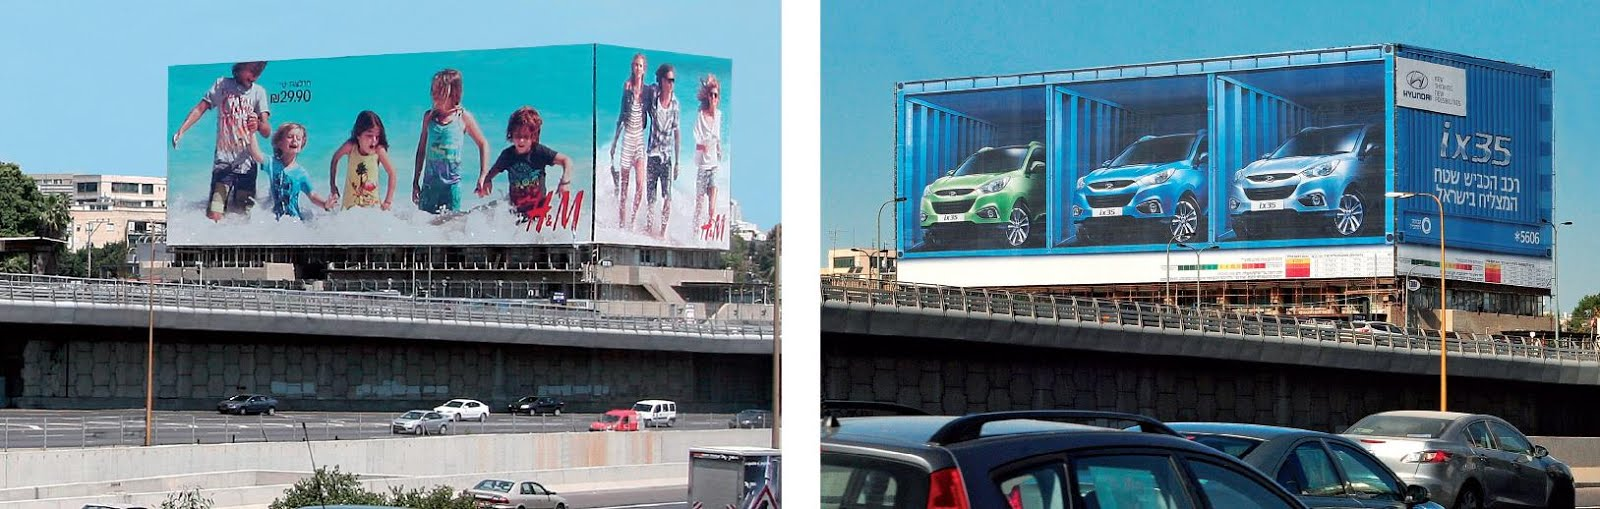 15 Clever And Creative Billboard Advertisements